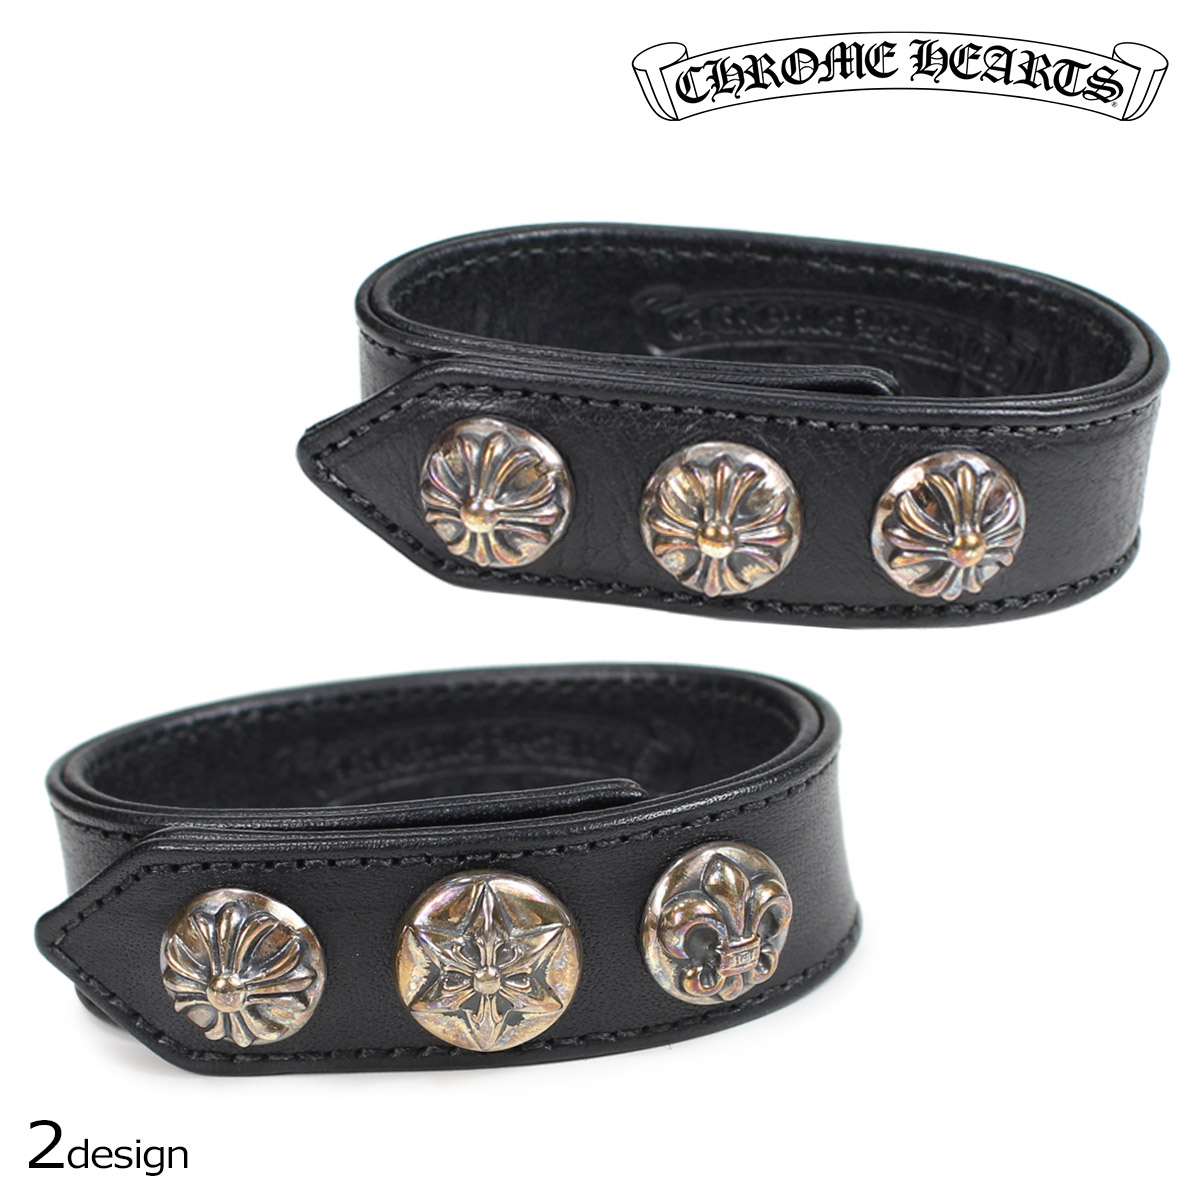 CHROME HEARTS BRACELET 3 BUTTON 2 SNAP CROSS BUTTON VARIOUS BUTTONS クロムハーツ ブレスレット バングル レザー ブラック 188